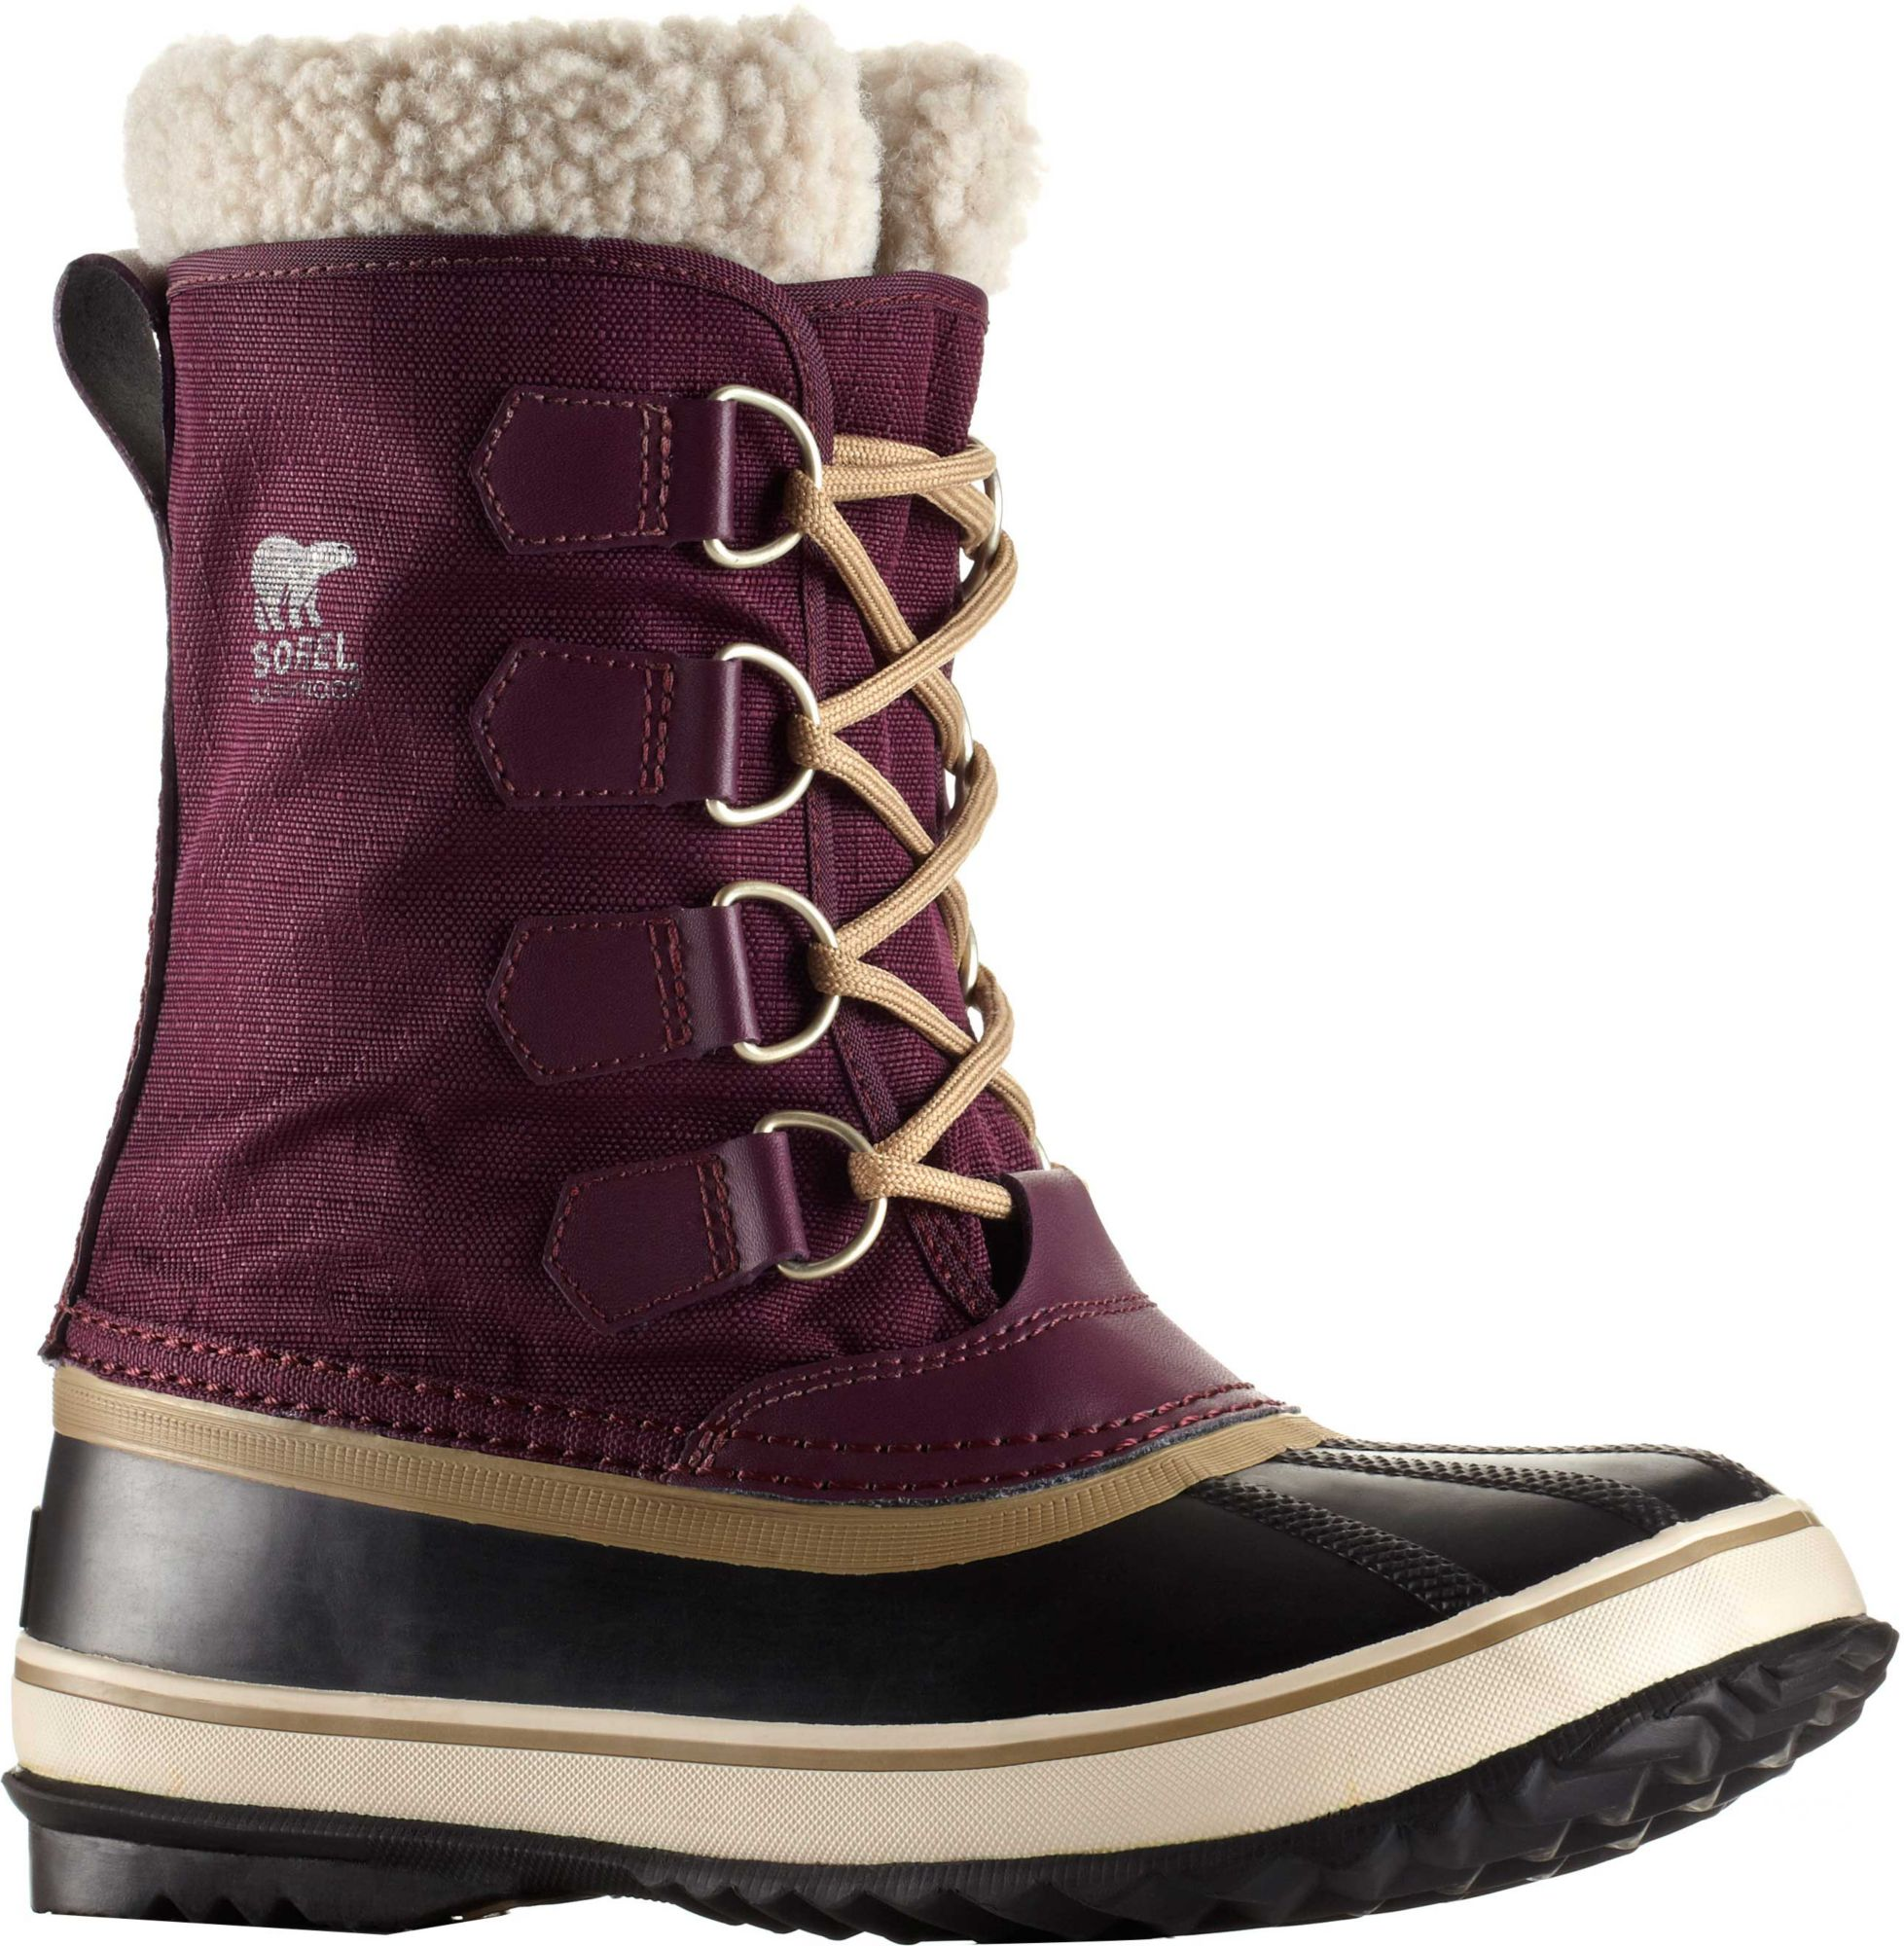 Have the perfect classy and stylish look by wearing women's winter boots